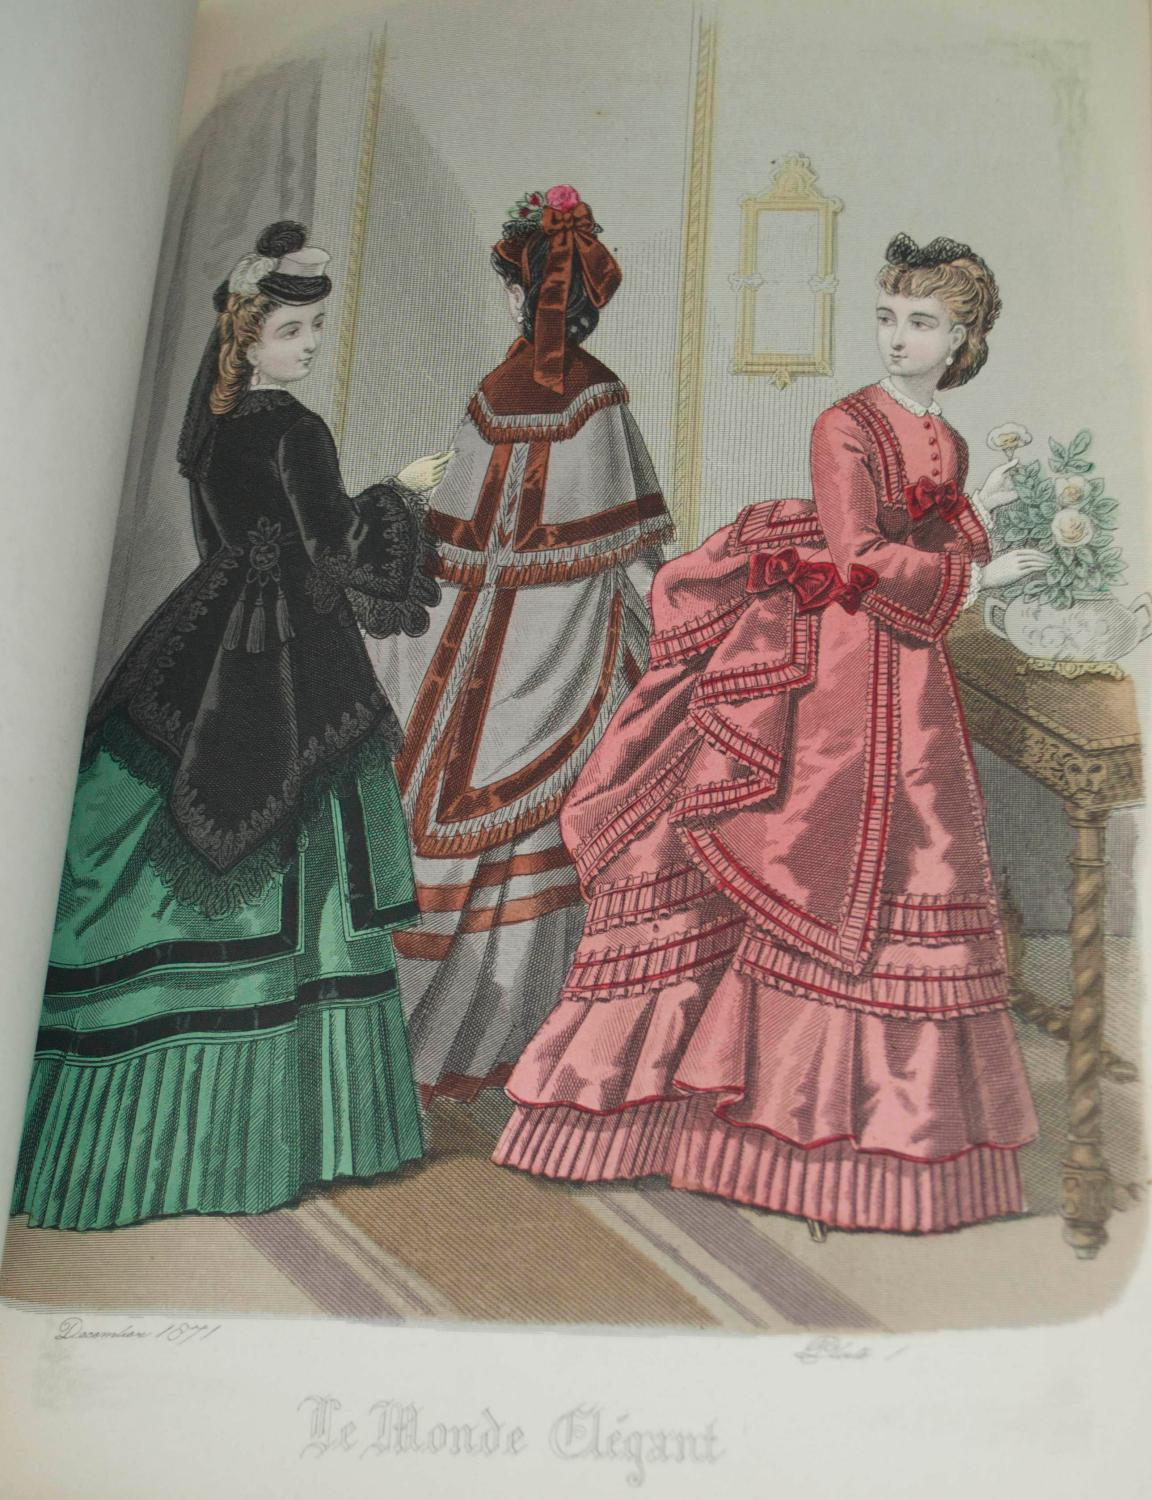 Coloured Plates of the Ladies Fashion COSTUME Softcover 564 Hand Coloured Plates Illustrating Ladies Fashion From 1871-1877 [COSTUME]. Coloured Plates of the Ladies Fashion. London & Paris: [1871-78]. Three